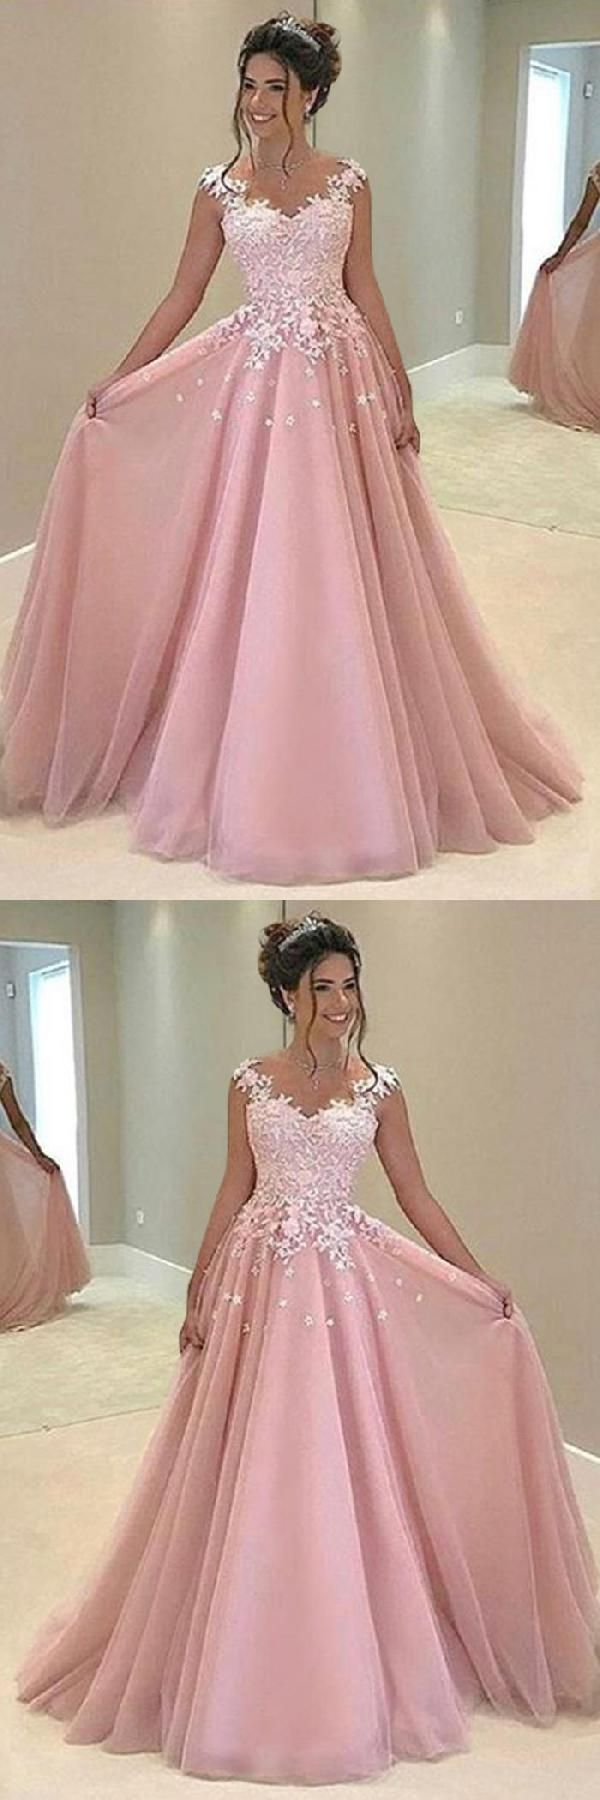 Hot sale beautiful prom dresses aline prom dresses pink prom